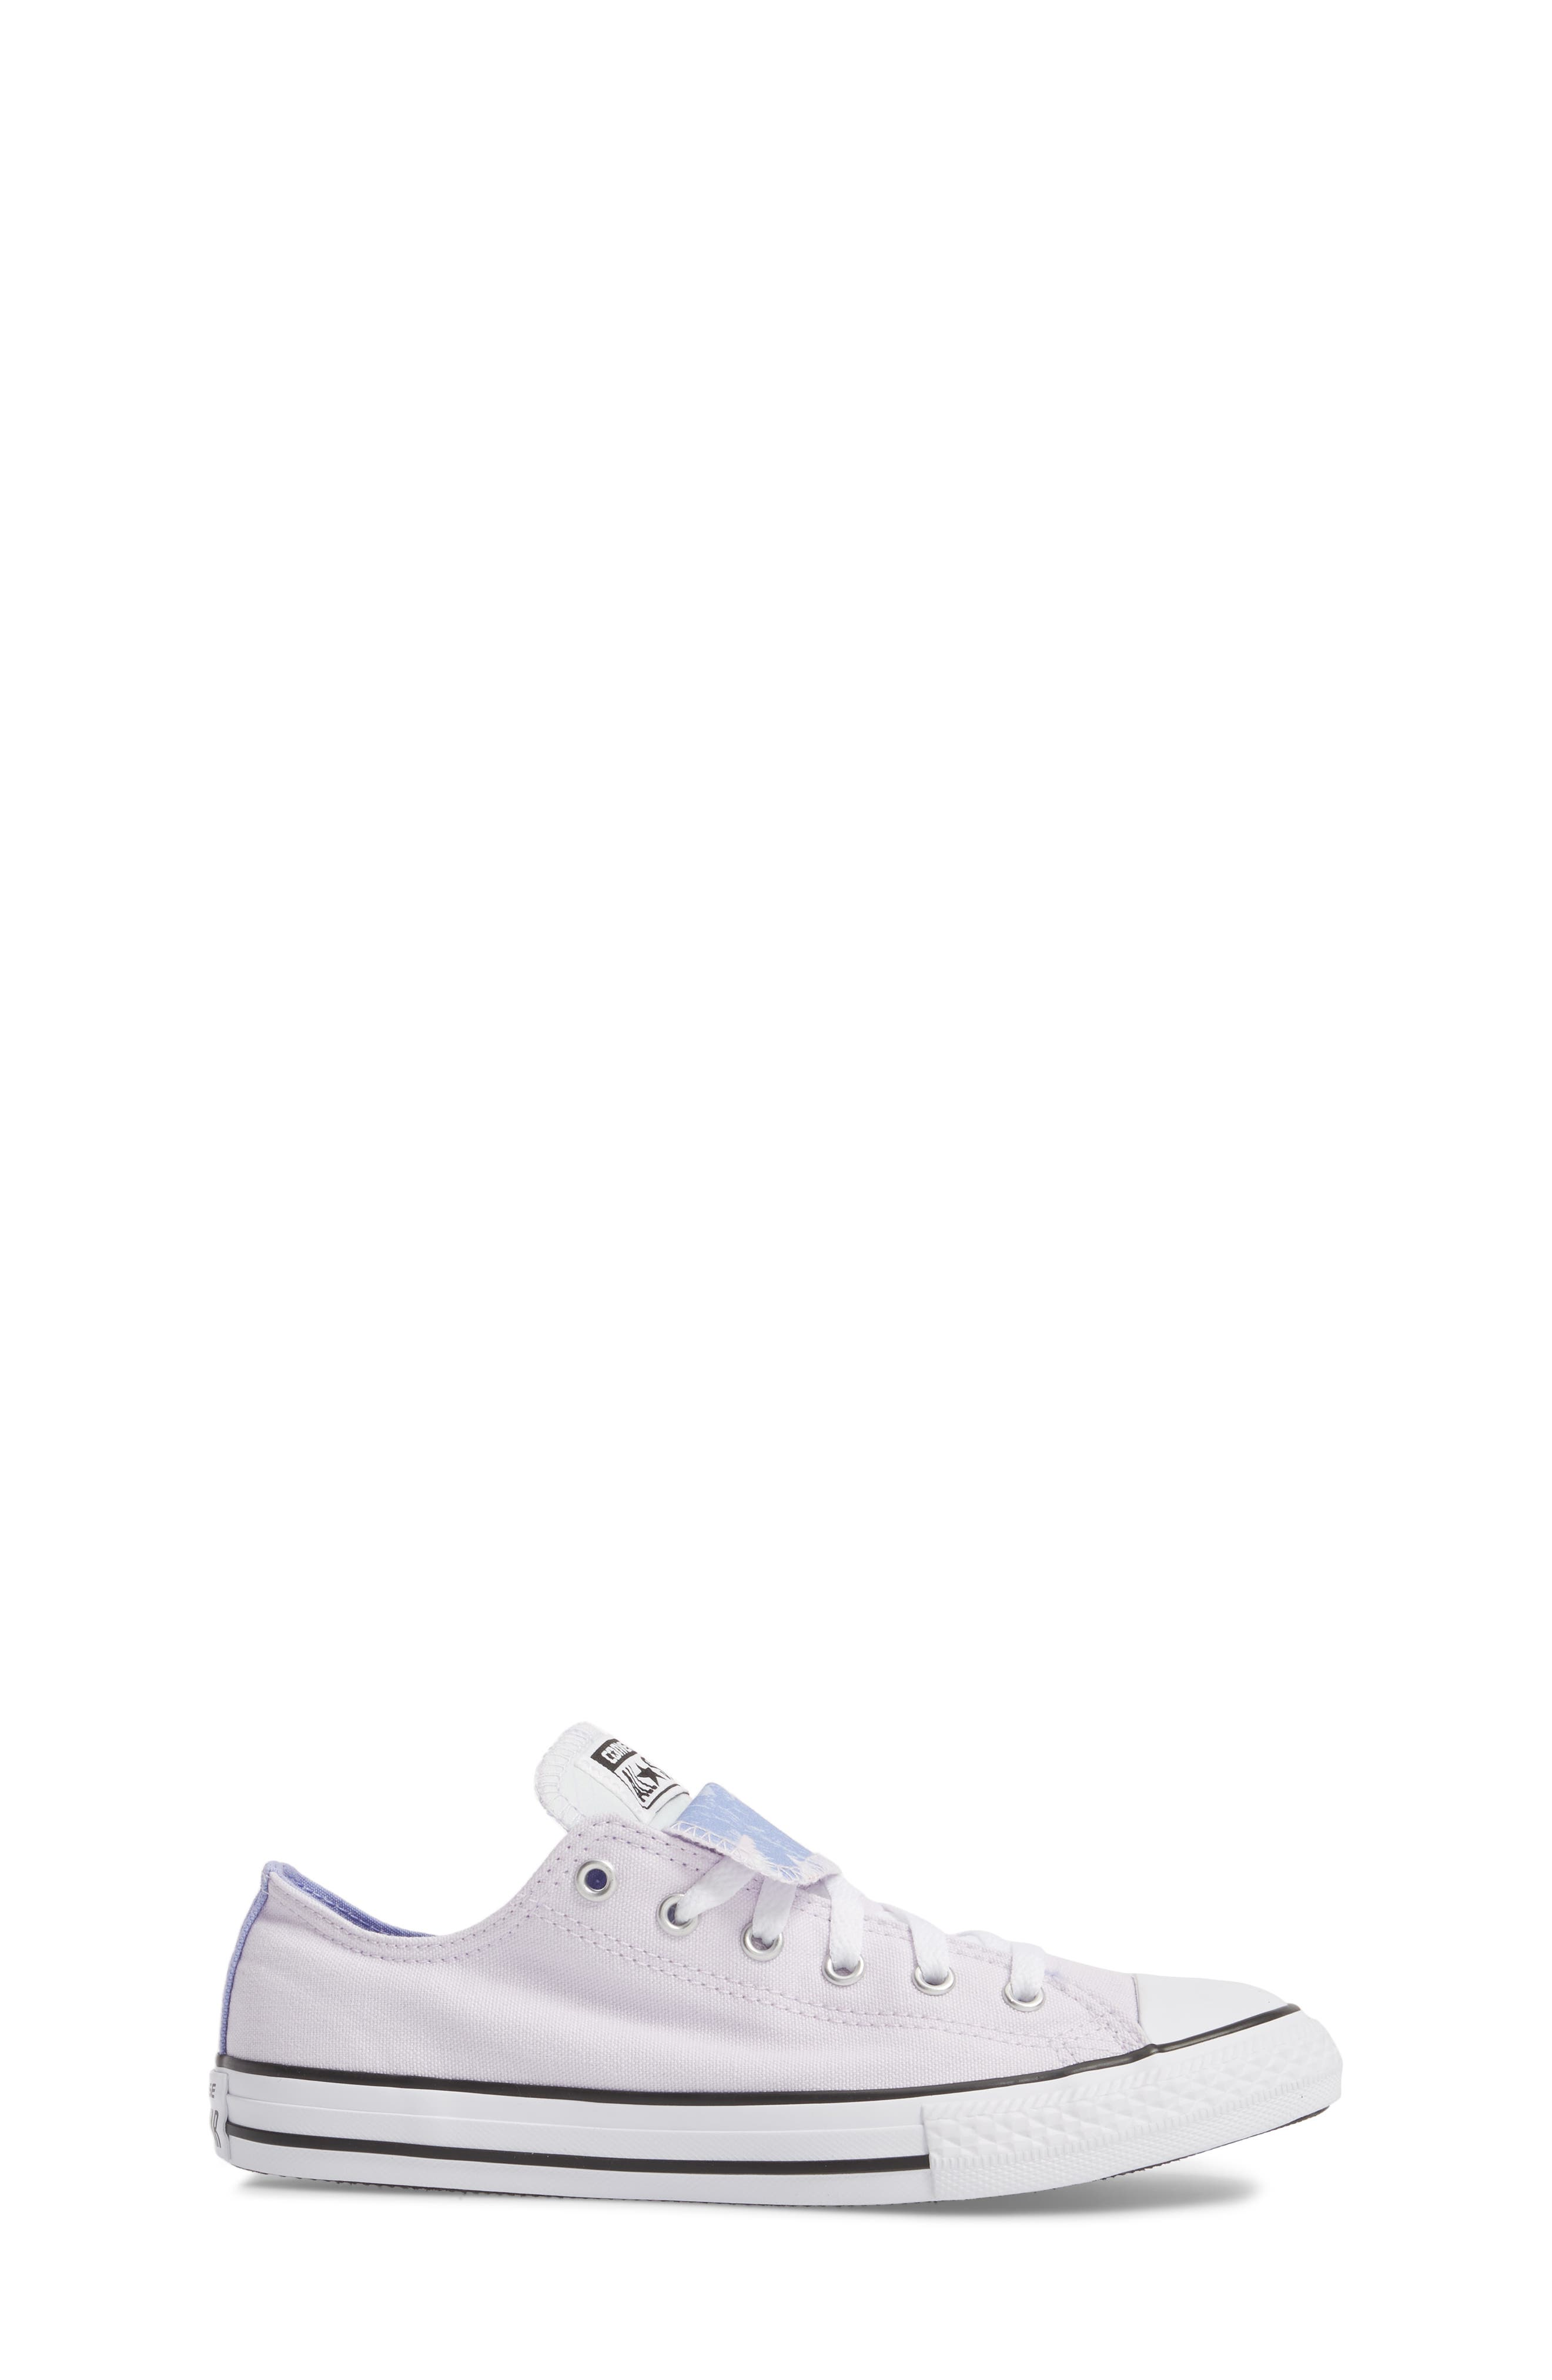 Chuck Taylor<sup>®</sup> All Star<sup>®</sup> Palm Tree Double Tongue Low Top Sneaker,                             Alternate thumbnail 3, color,                             Barely Grape